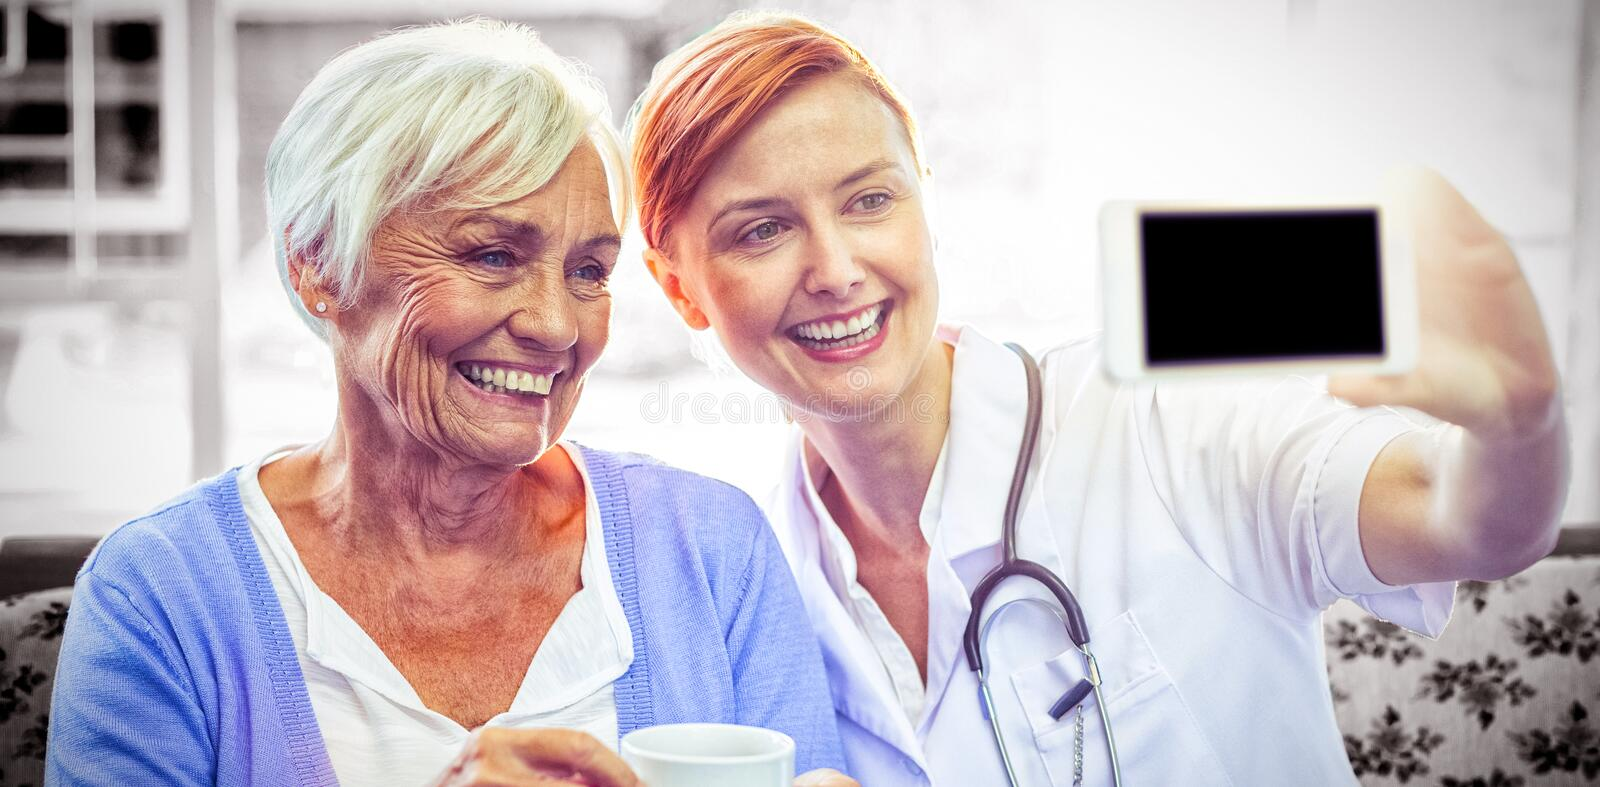 Smiling doctor and patient looking at phone while having tea. At home royalty free stock photo